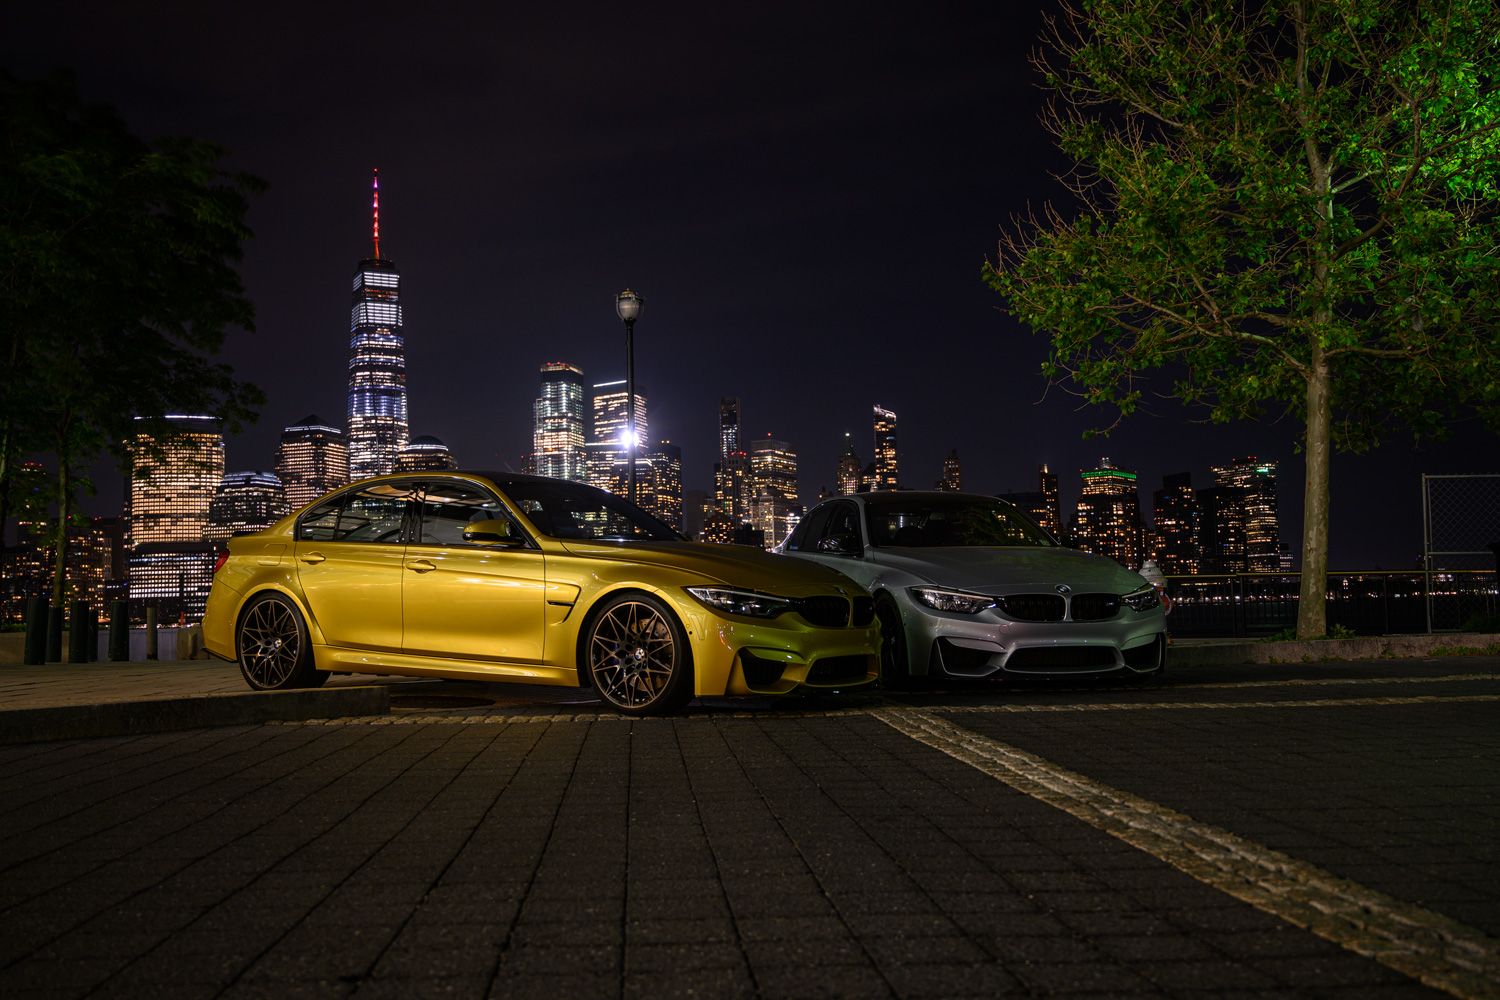 BMW M3s in NYC